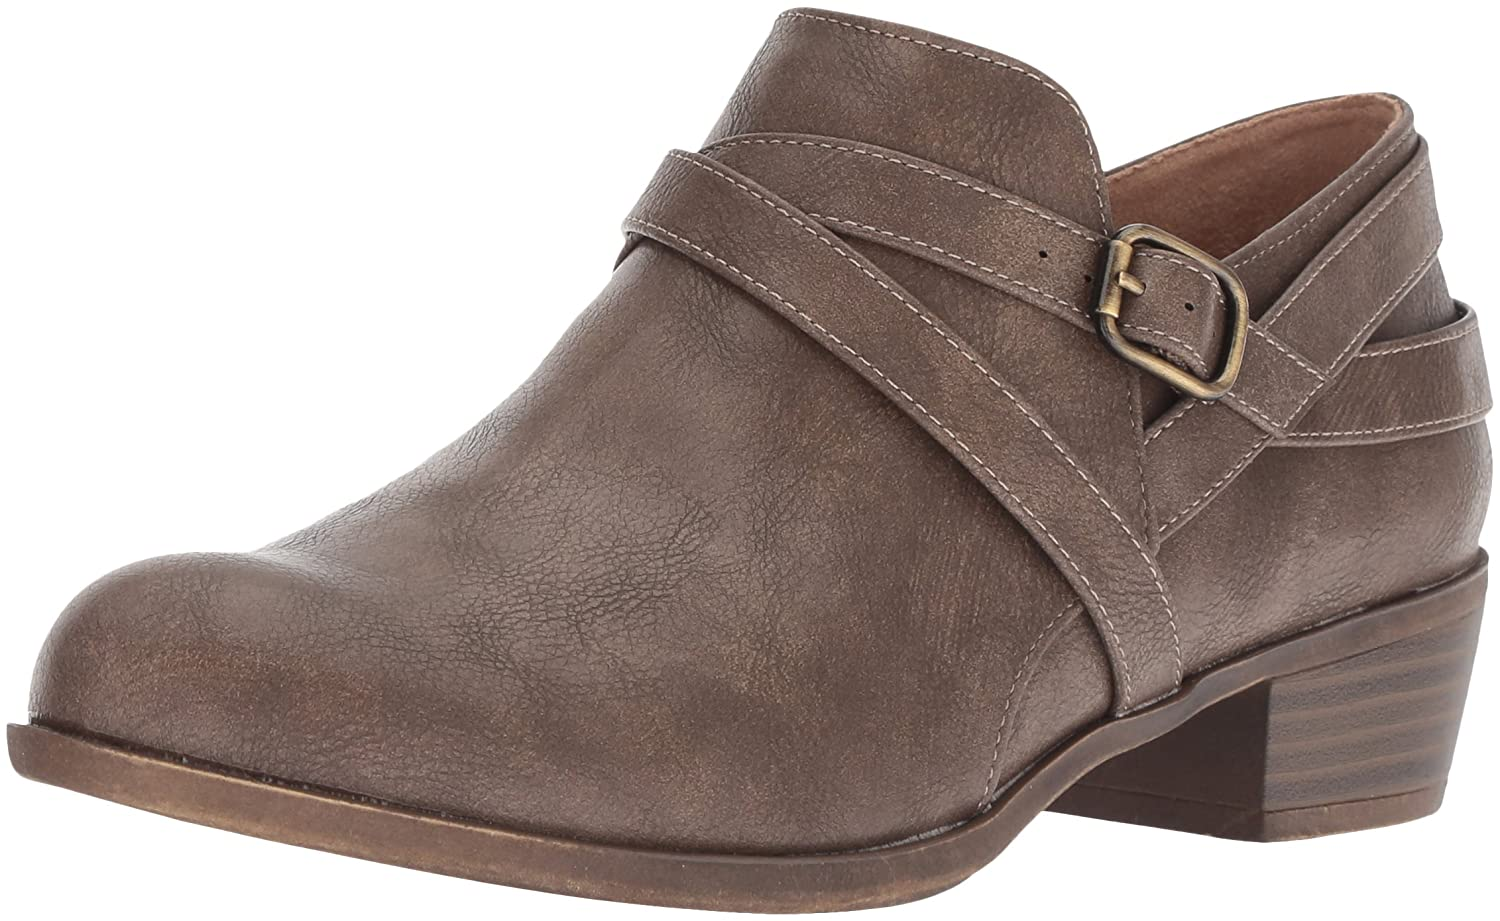 LifeStride Women's Adley Ankle Boot B07CR5YZB6 9.5 W US|Taupe